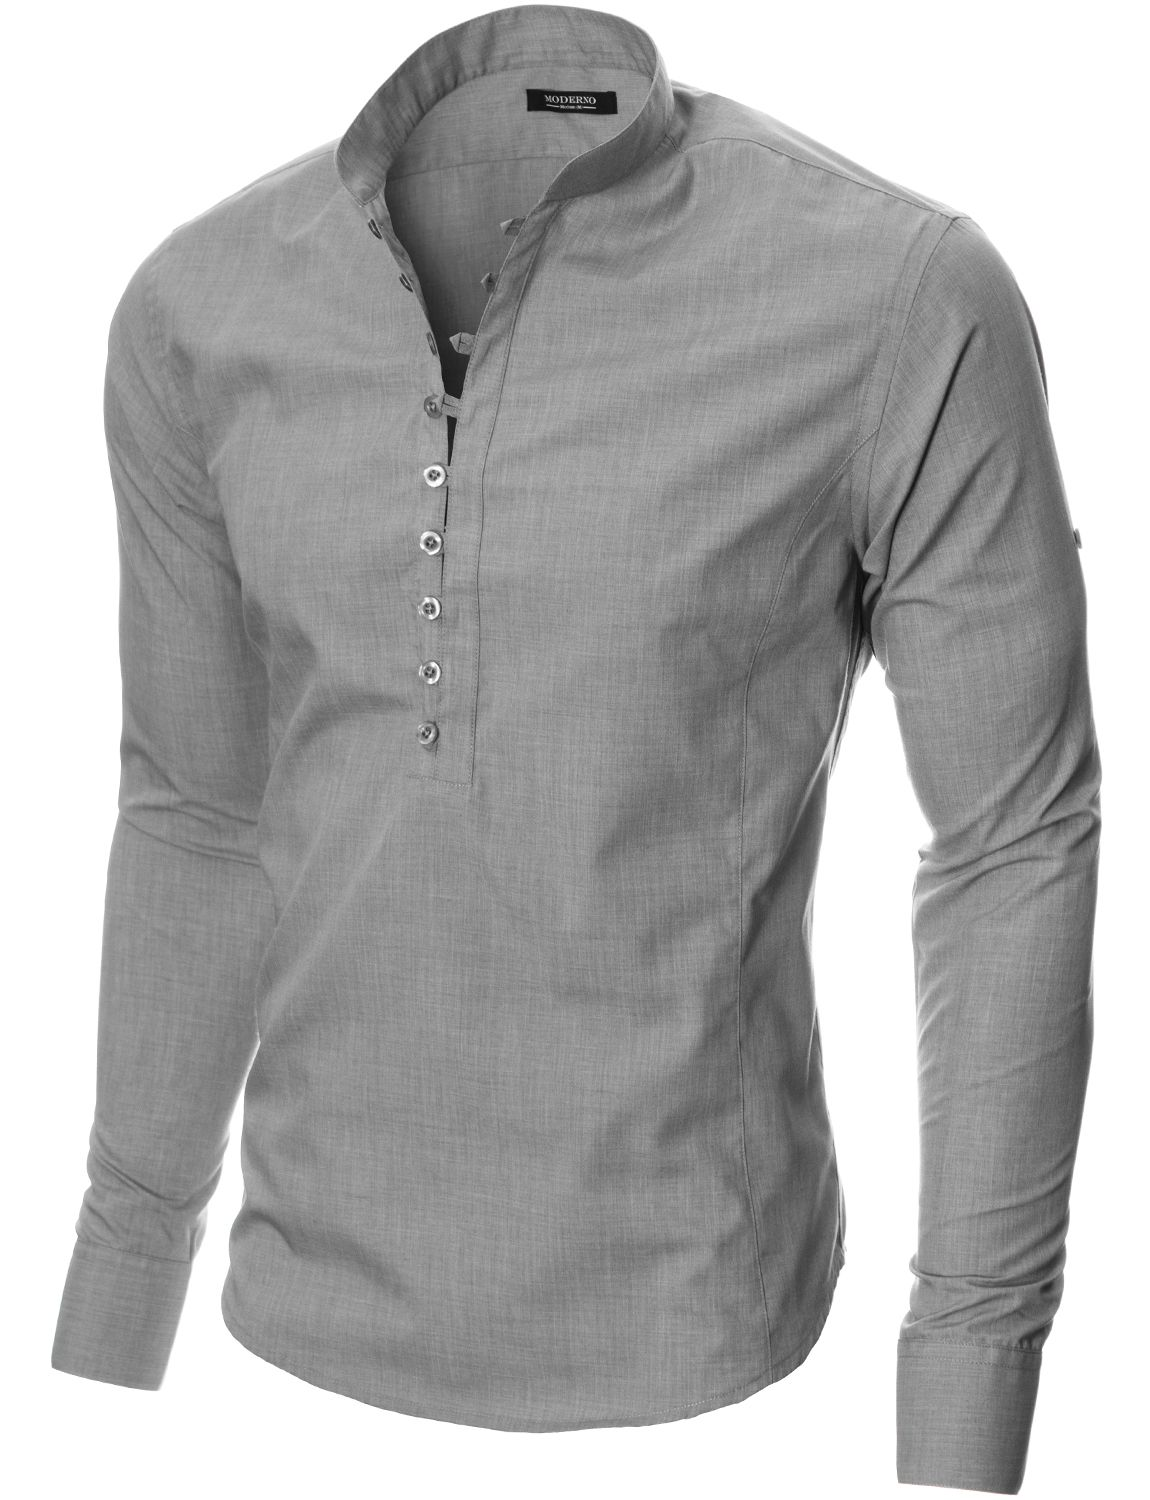 c1c88f432c0e Mens long sleeve mao collar casual shirt charcoal (MOD1431LS ...